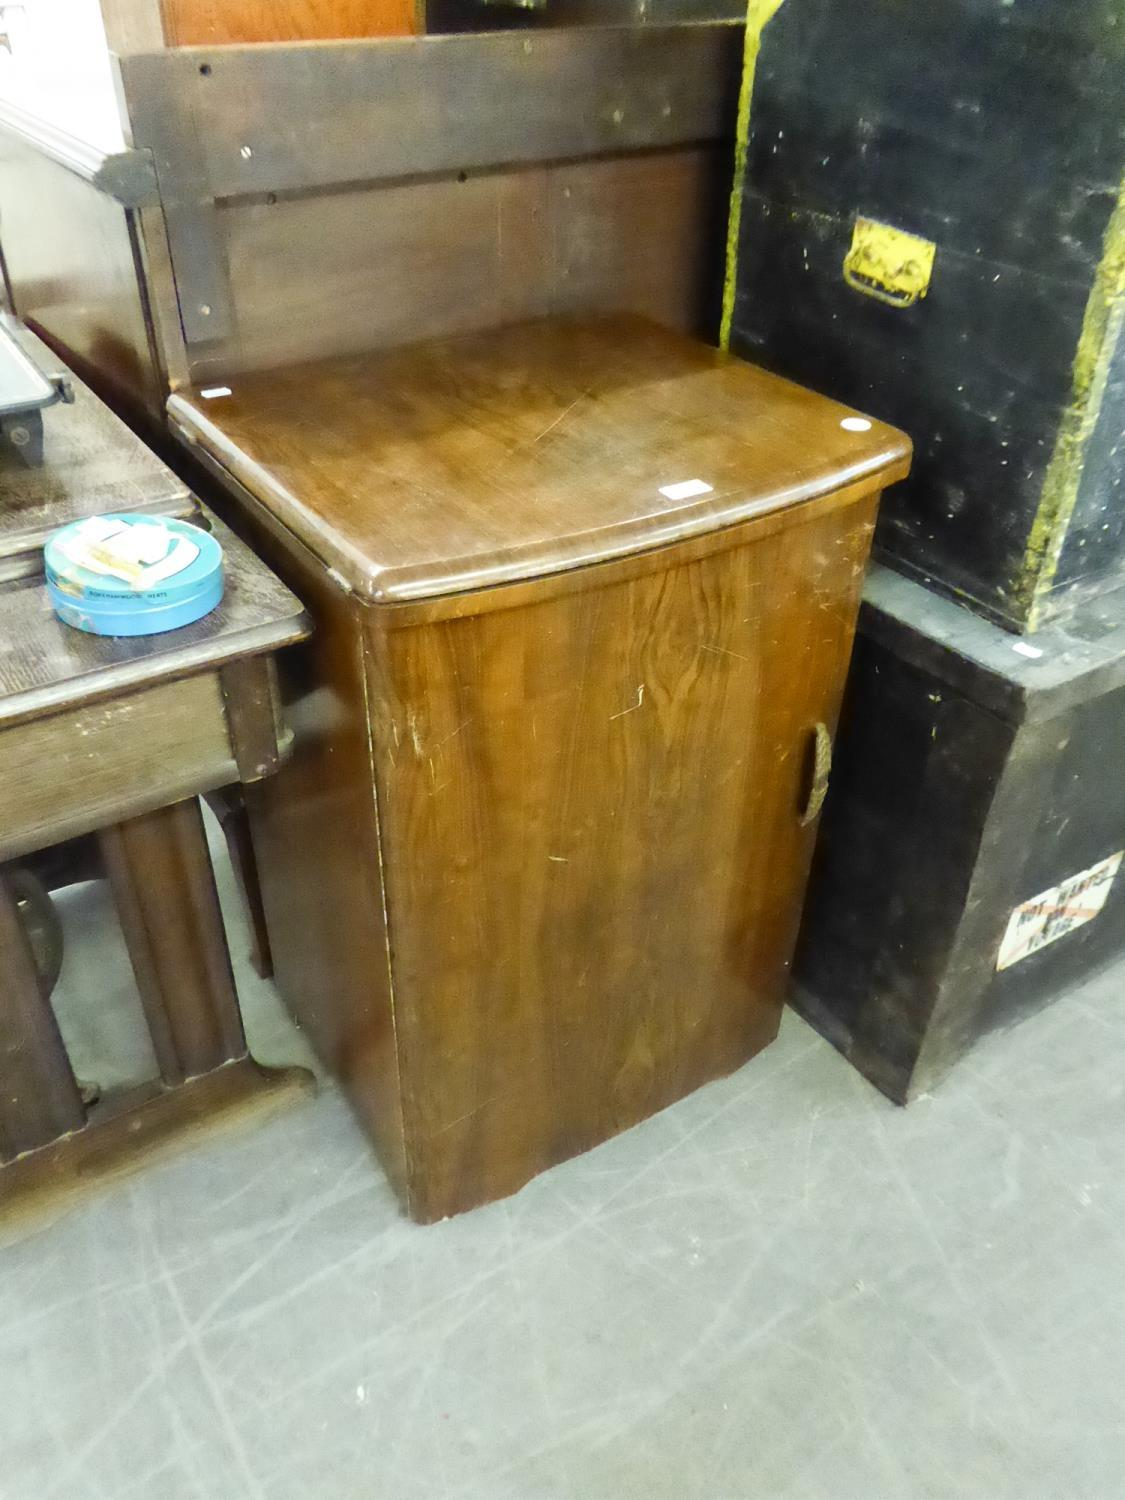 Lot 73 - SINGER SEWING MACHINE in walnutwood cabinet AND ANOTHER SINGER SEWING MACHINE detached from oak base